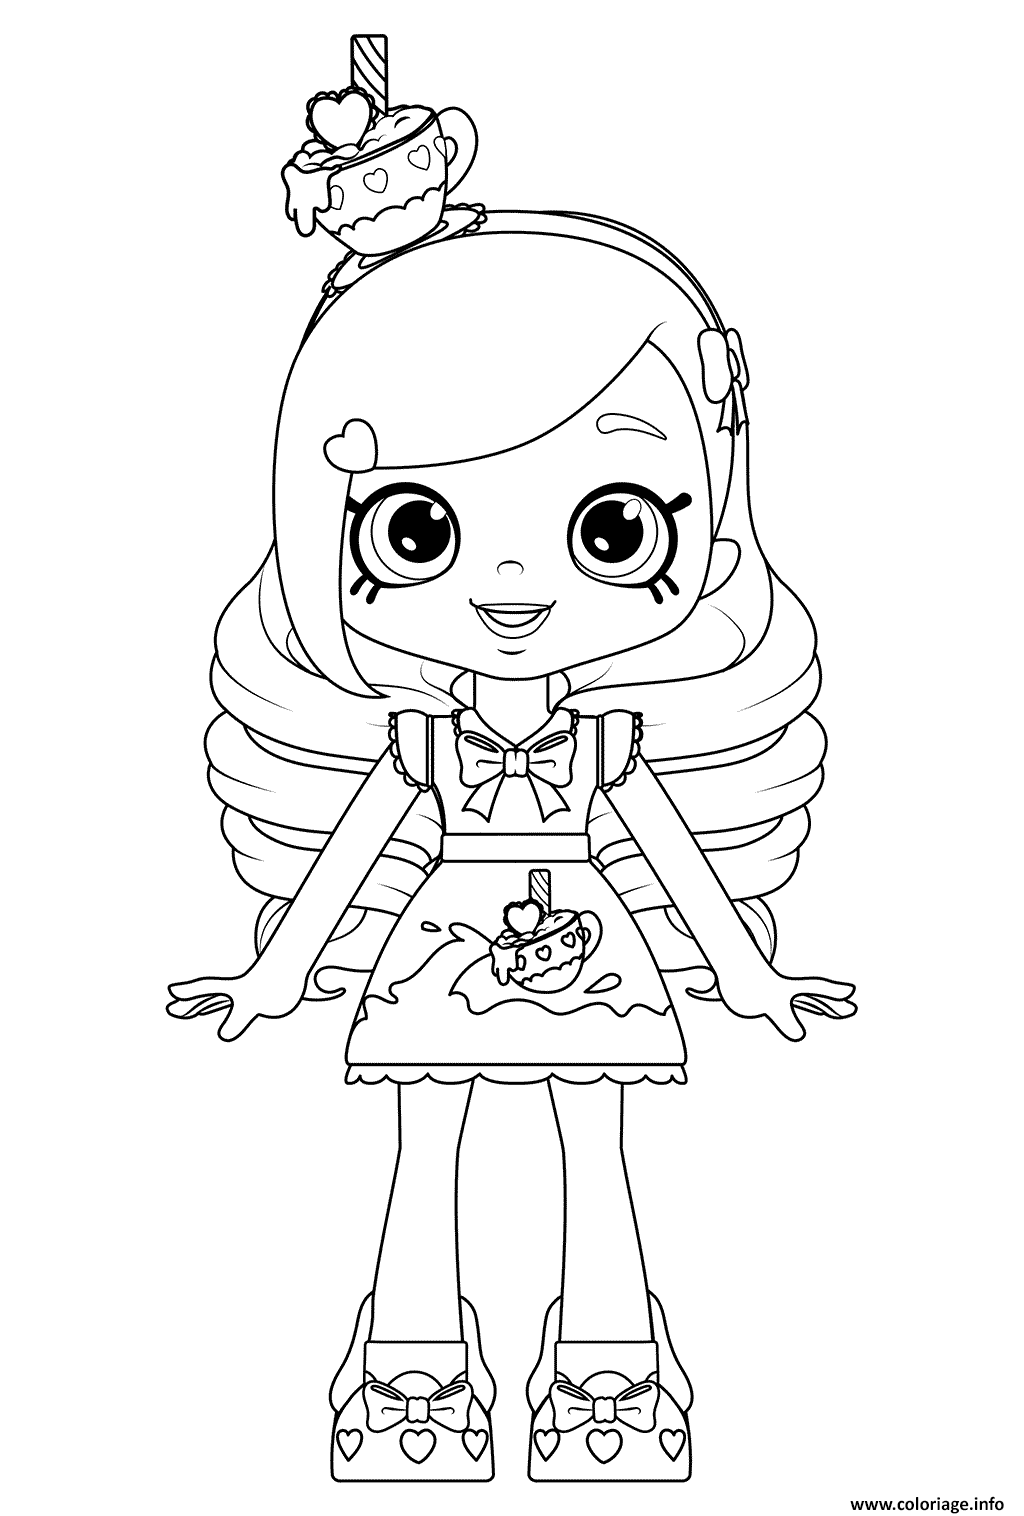 Coloriage Kirstea Shoppies Doll Dessin à Imprimer